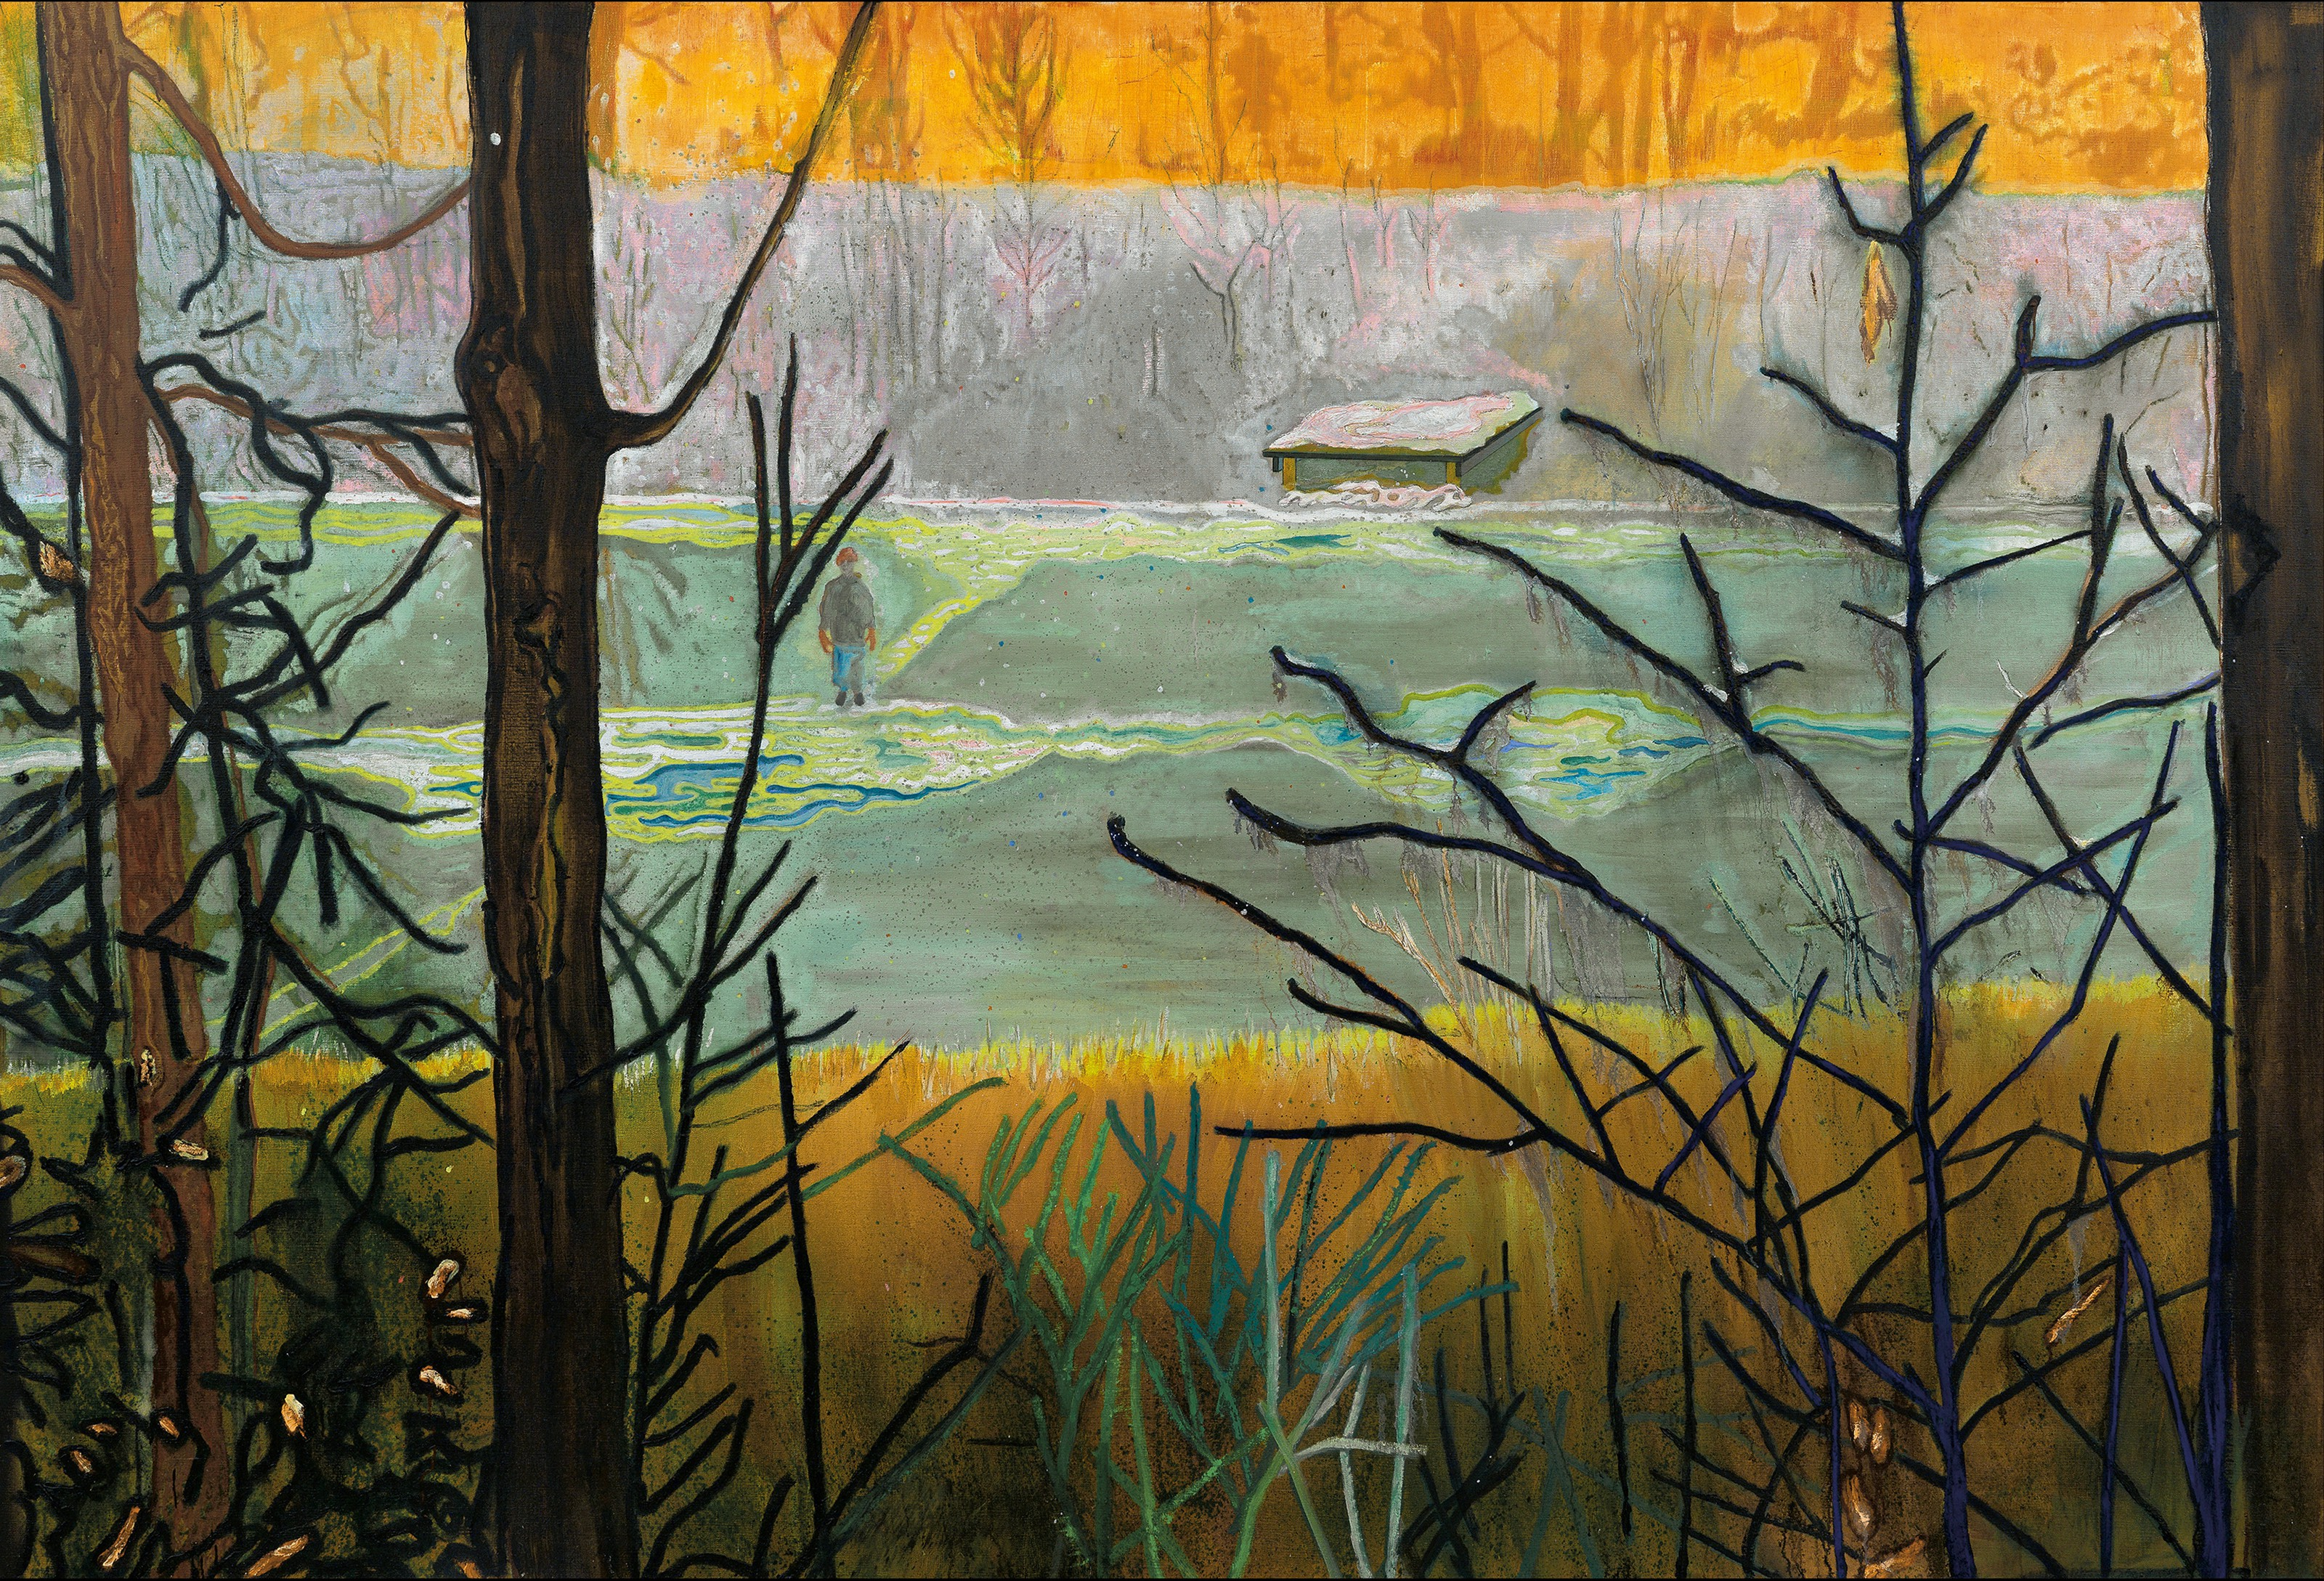 Peter Doig - Almost Grown